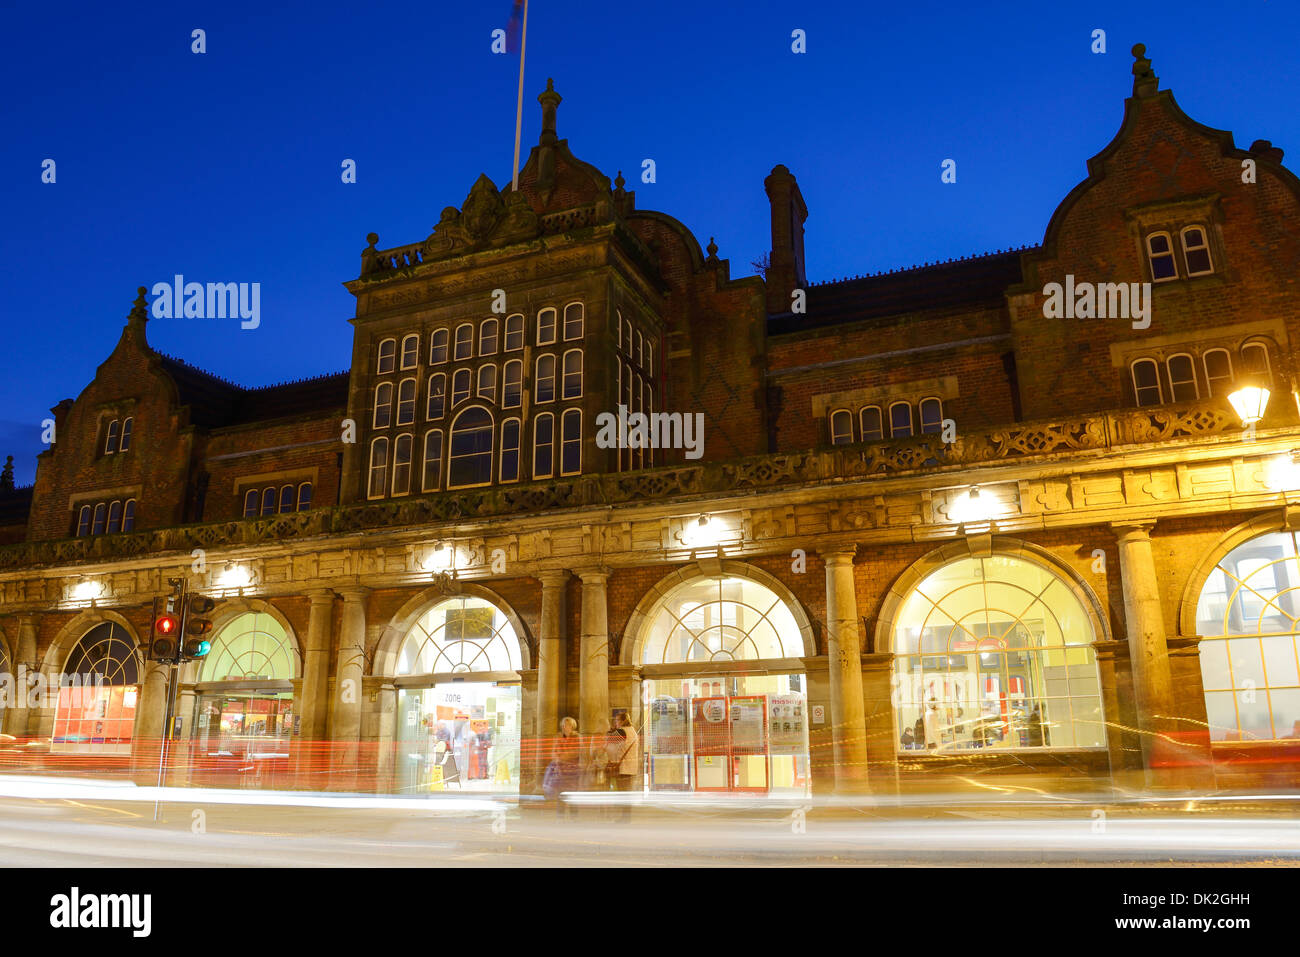 The railway station building in Stoke on Trent - Stock Image